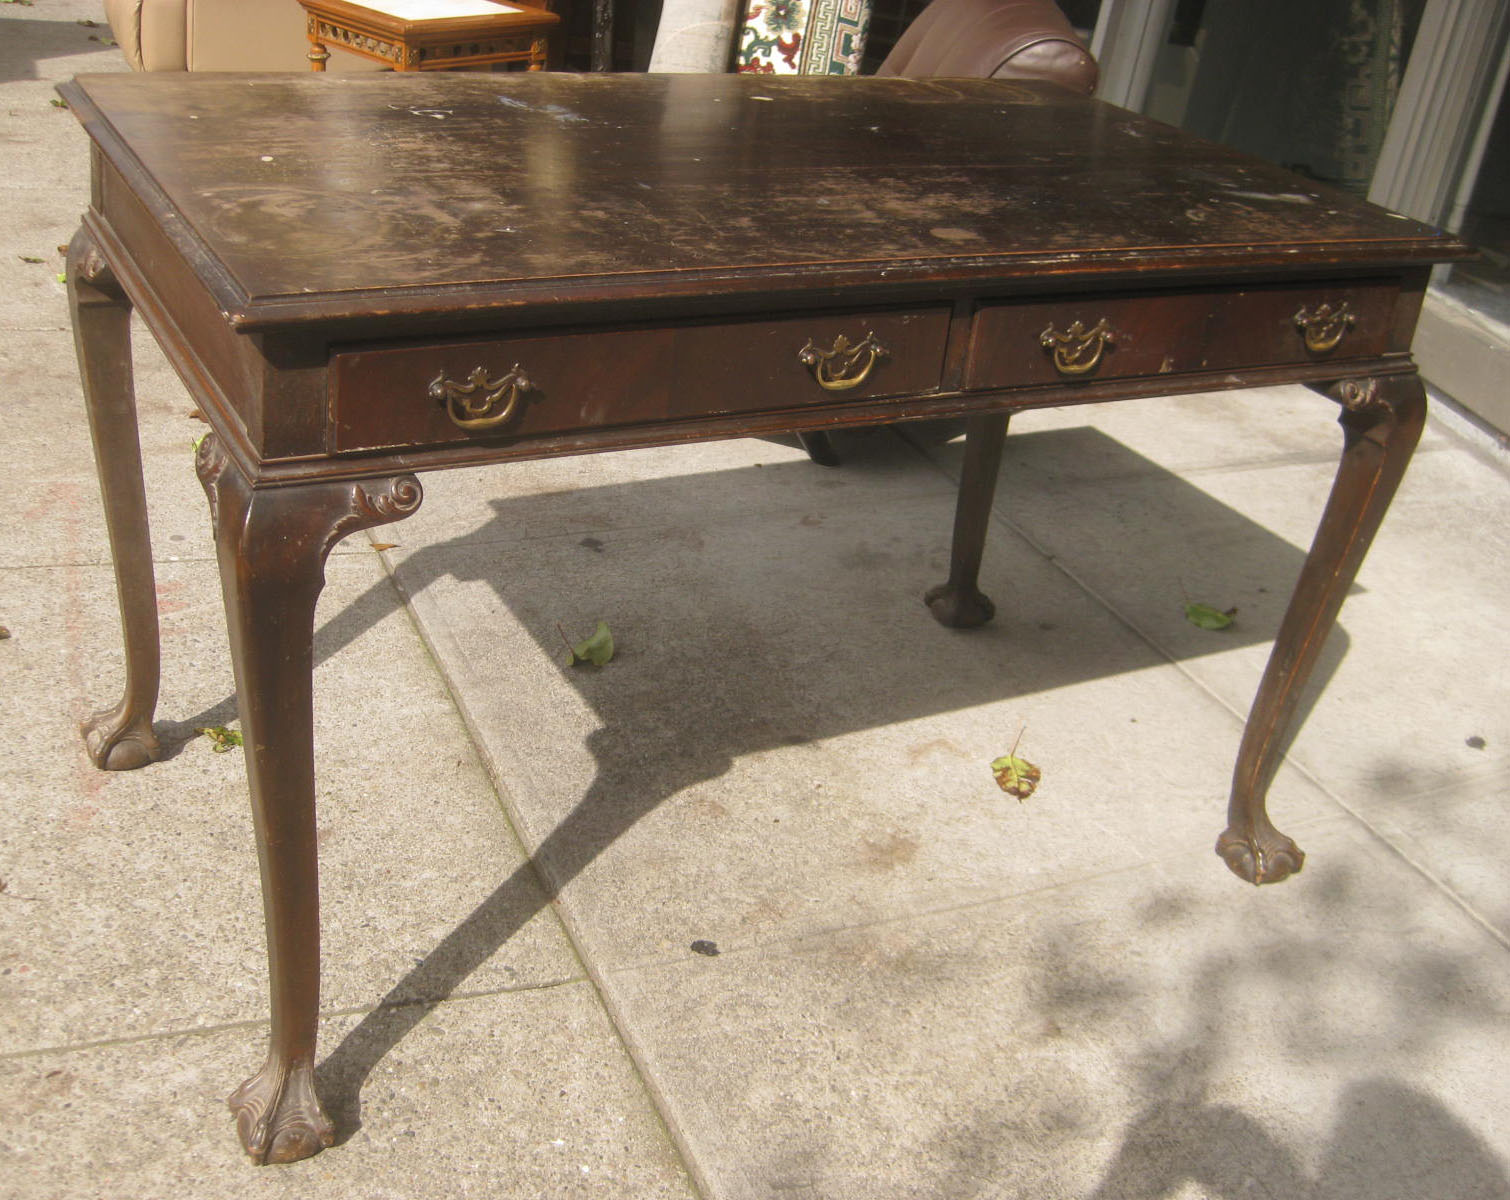 Uhuru furniture collectibles sold claw foot library table 145 sold claw foot library table 145 geotapseo Choice Image